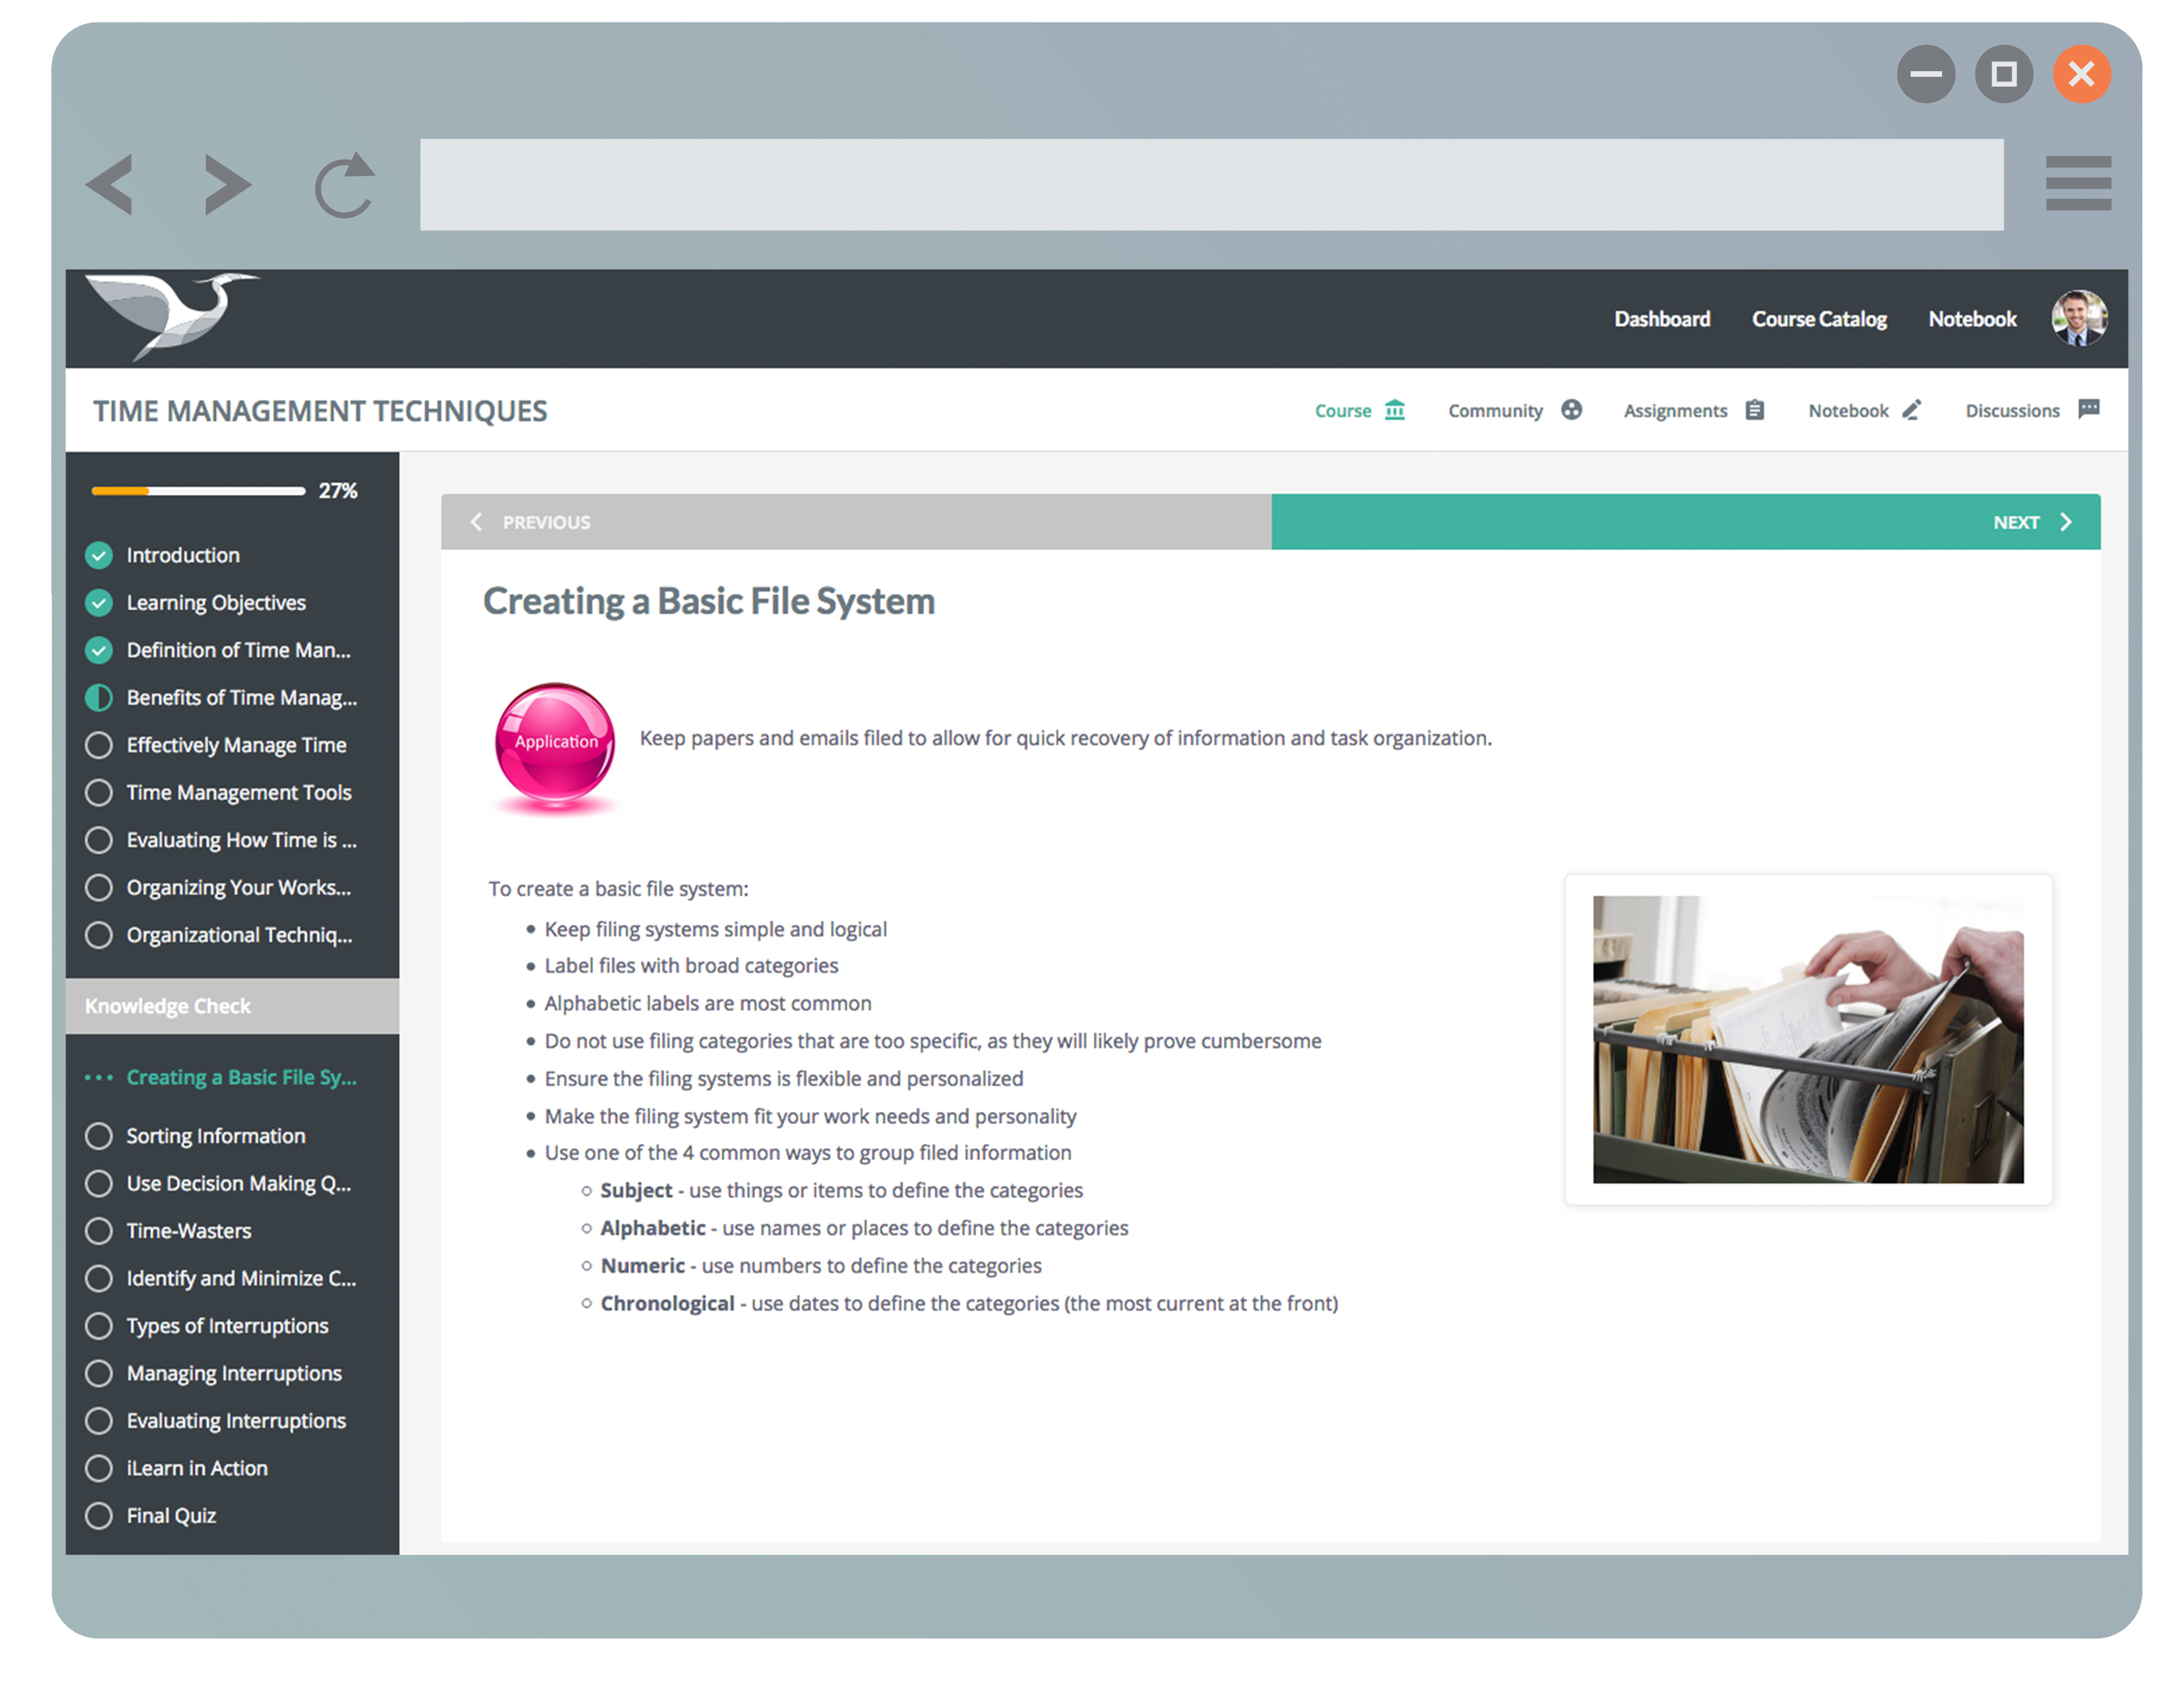 Sarus Learning LMS integrates with Magento